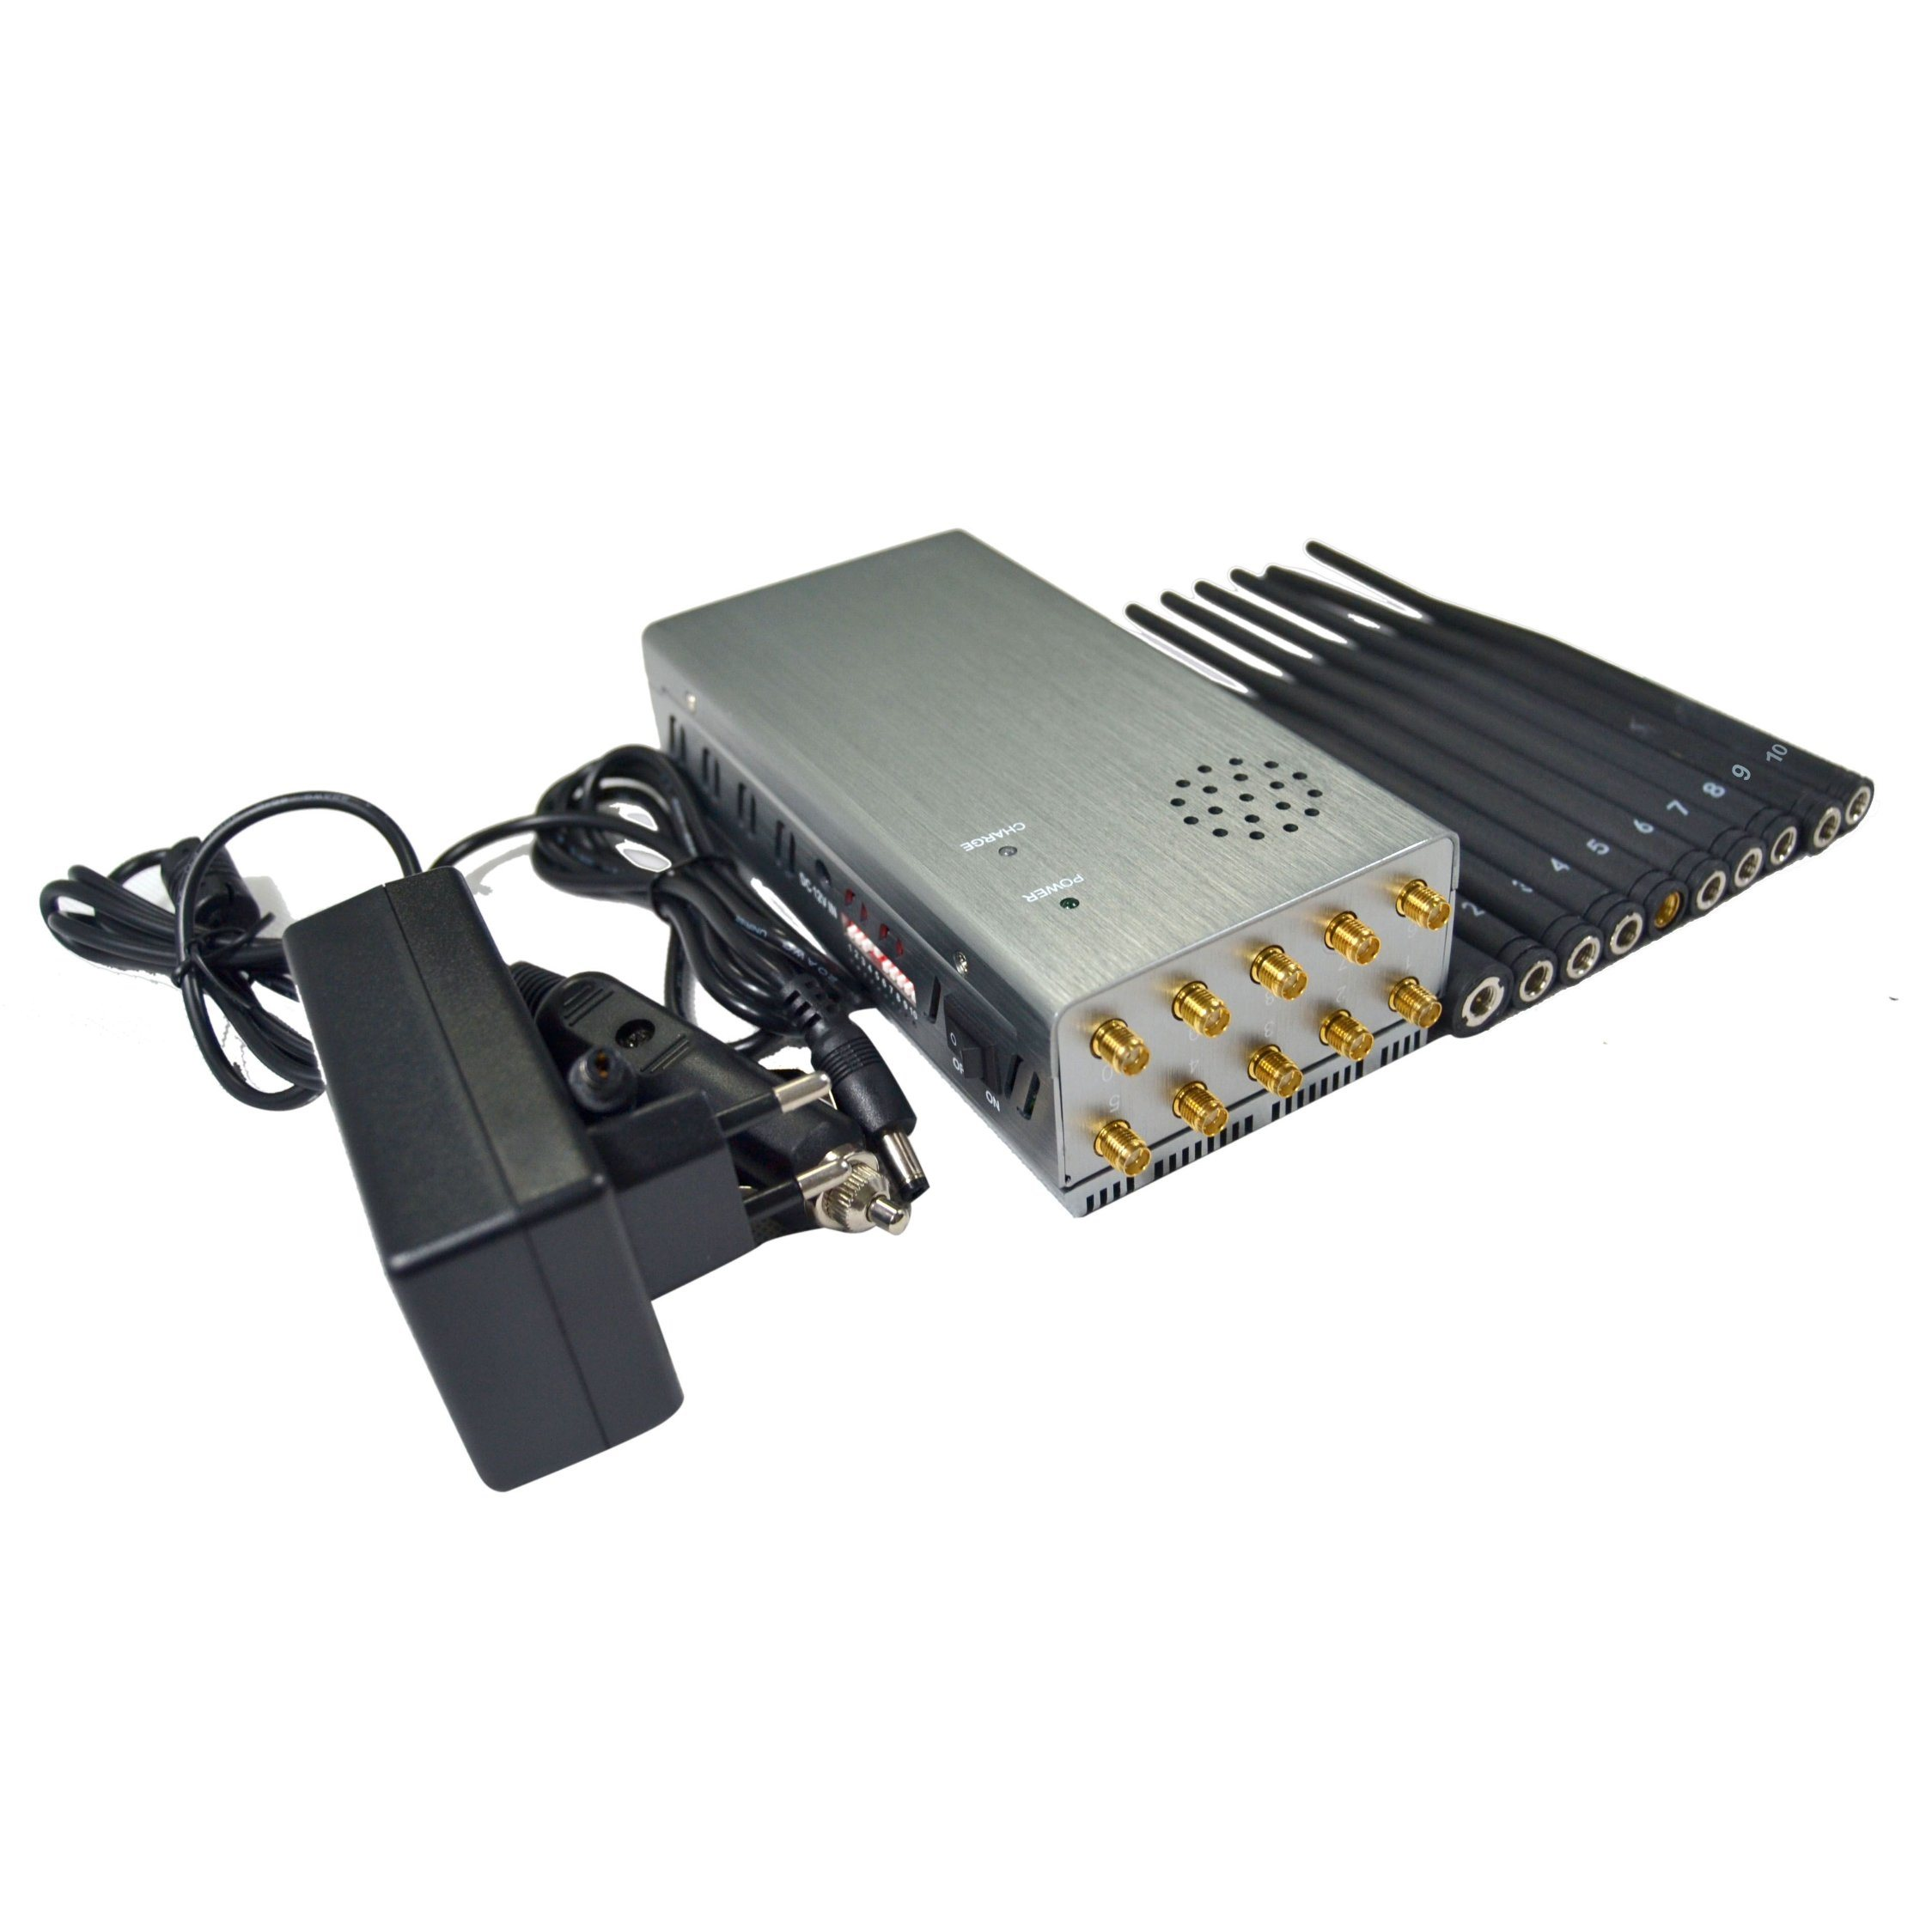 signal jammer Keller , China The King of Portable Jammers with 8000mA and 10 Antennas Including 2g 3G 4G 5g GPS 433MHz315MHz868MHz WiFi - China 8000mA Battery Jammer, Large Volume Power Signal Blocker